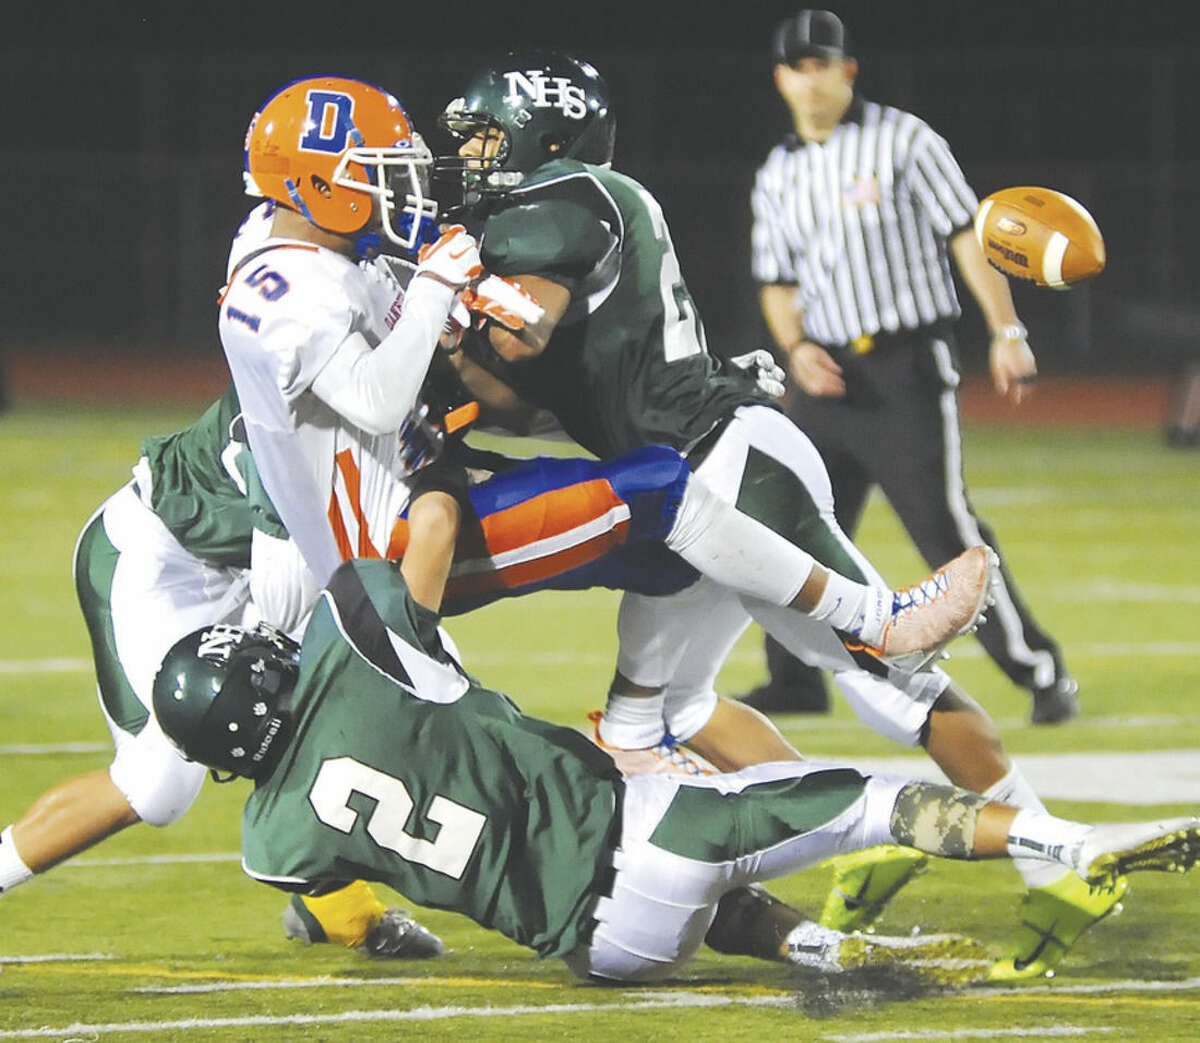 Hour photo/John Nash Danbury's Tysheen McCrea (15) has the ball dislodged on a vicious hit by Norwalk's Eric Cohens (right) as Bear teammates Harrison Hefferan (2) and Brendan Brown, rear, join on the tackle. Norwalk recovered the fumble, but lost the game 14-6.